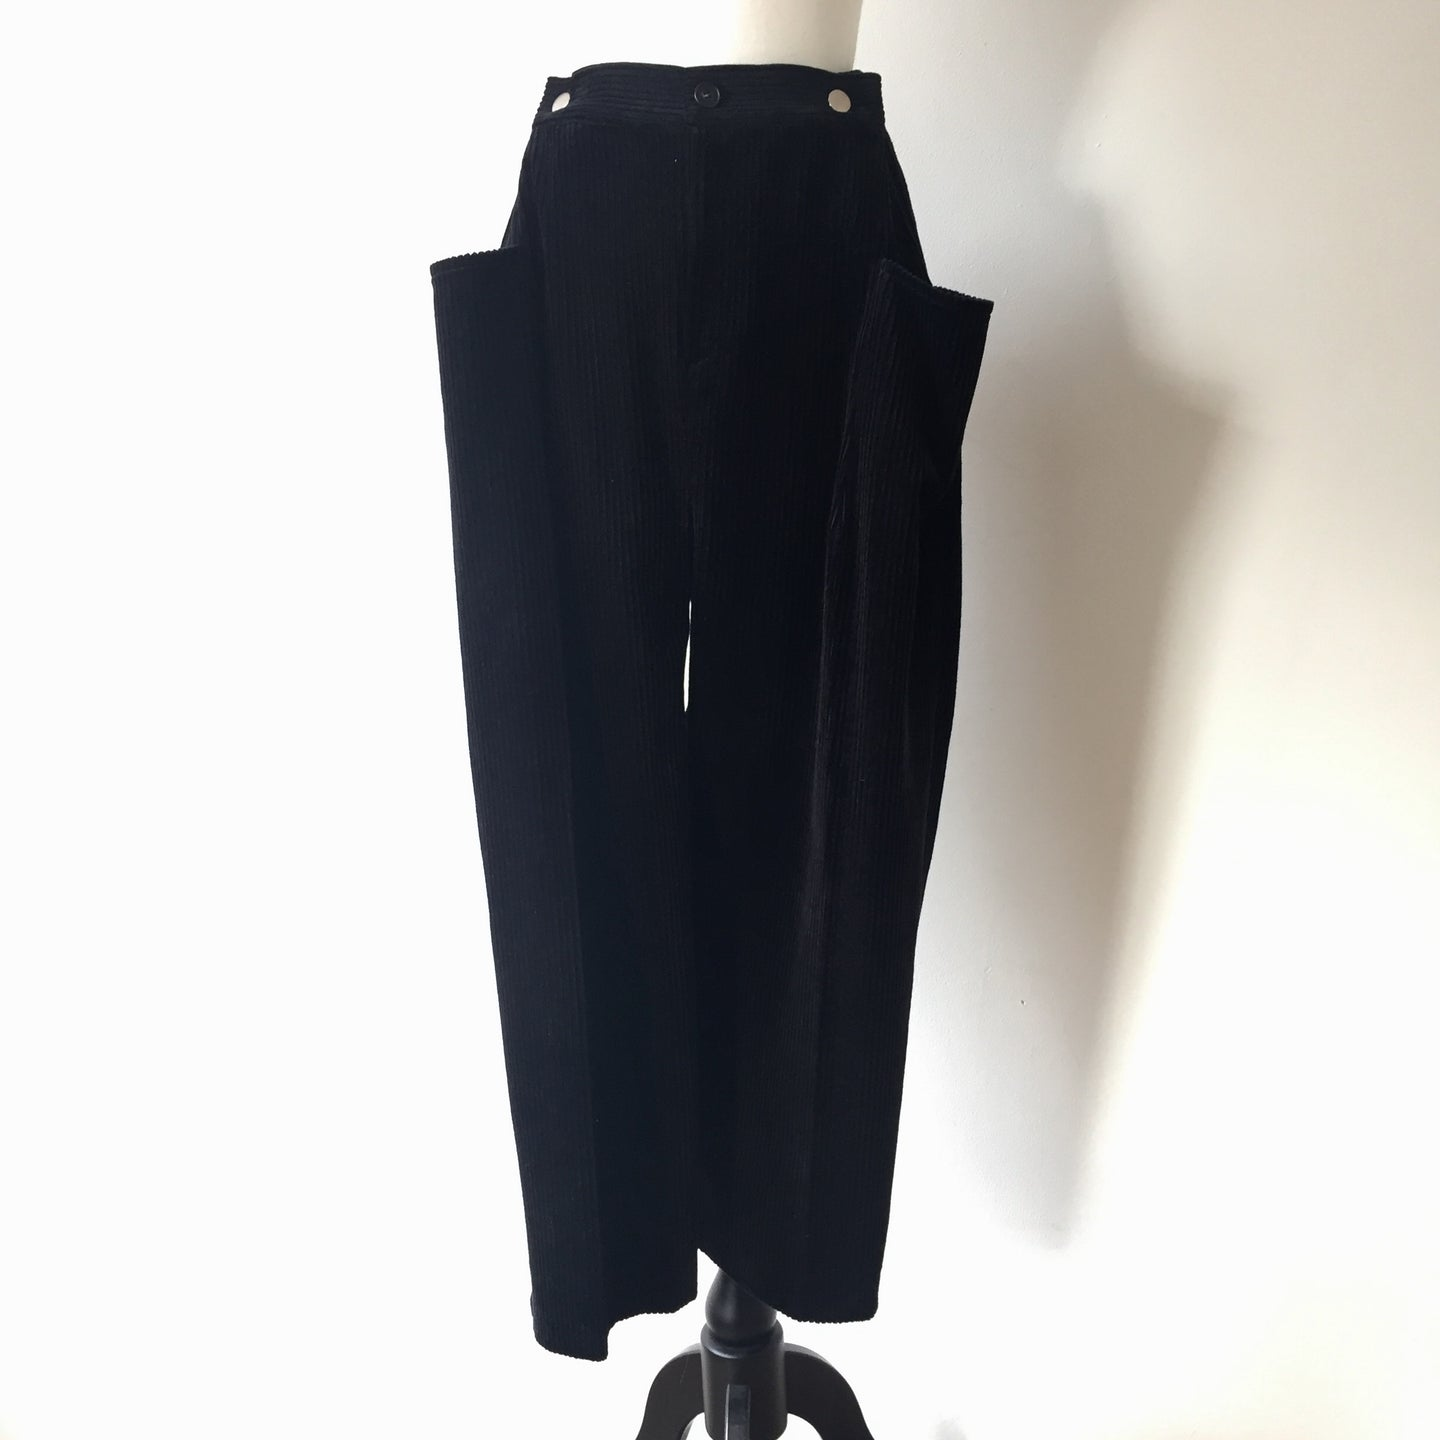 Corduroy front pockets trousers-Black-, Trousers, WondrousTheatre, WondrousTheatre,